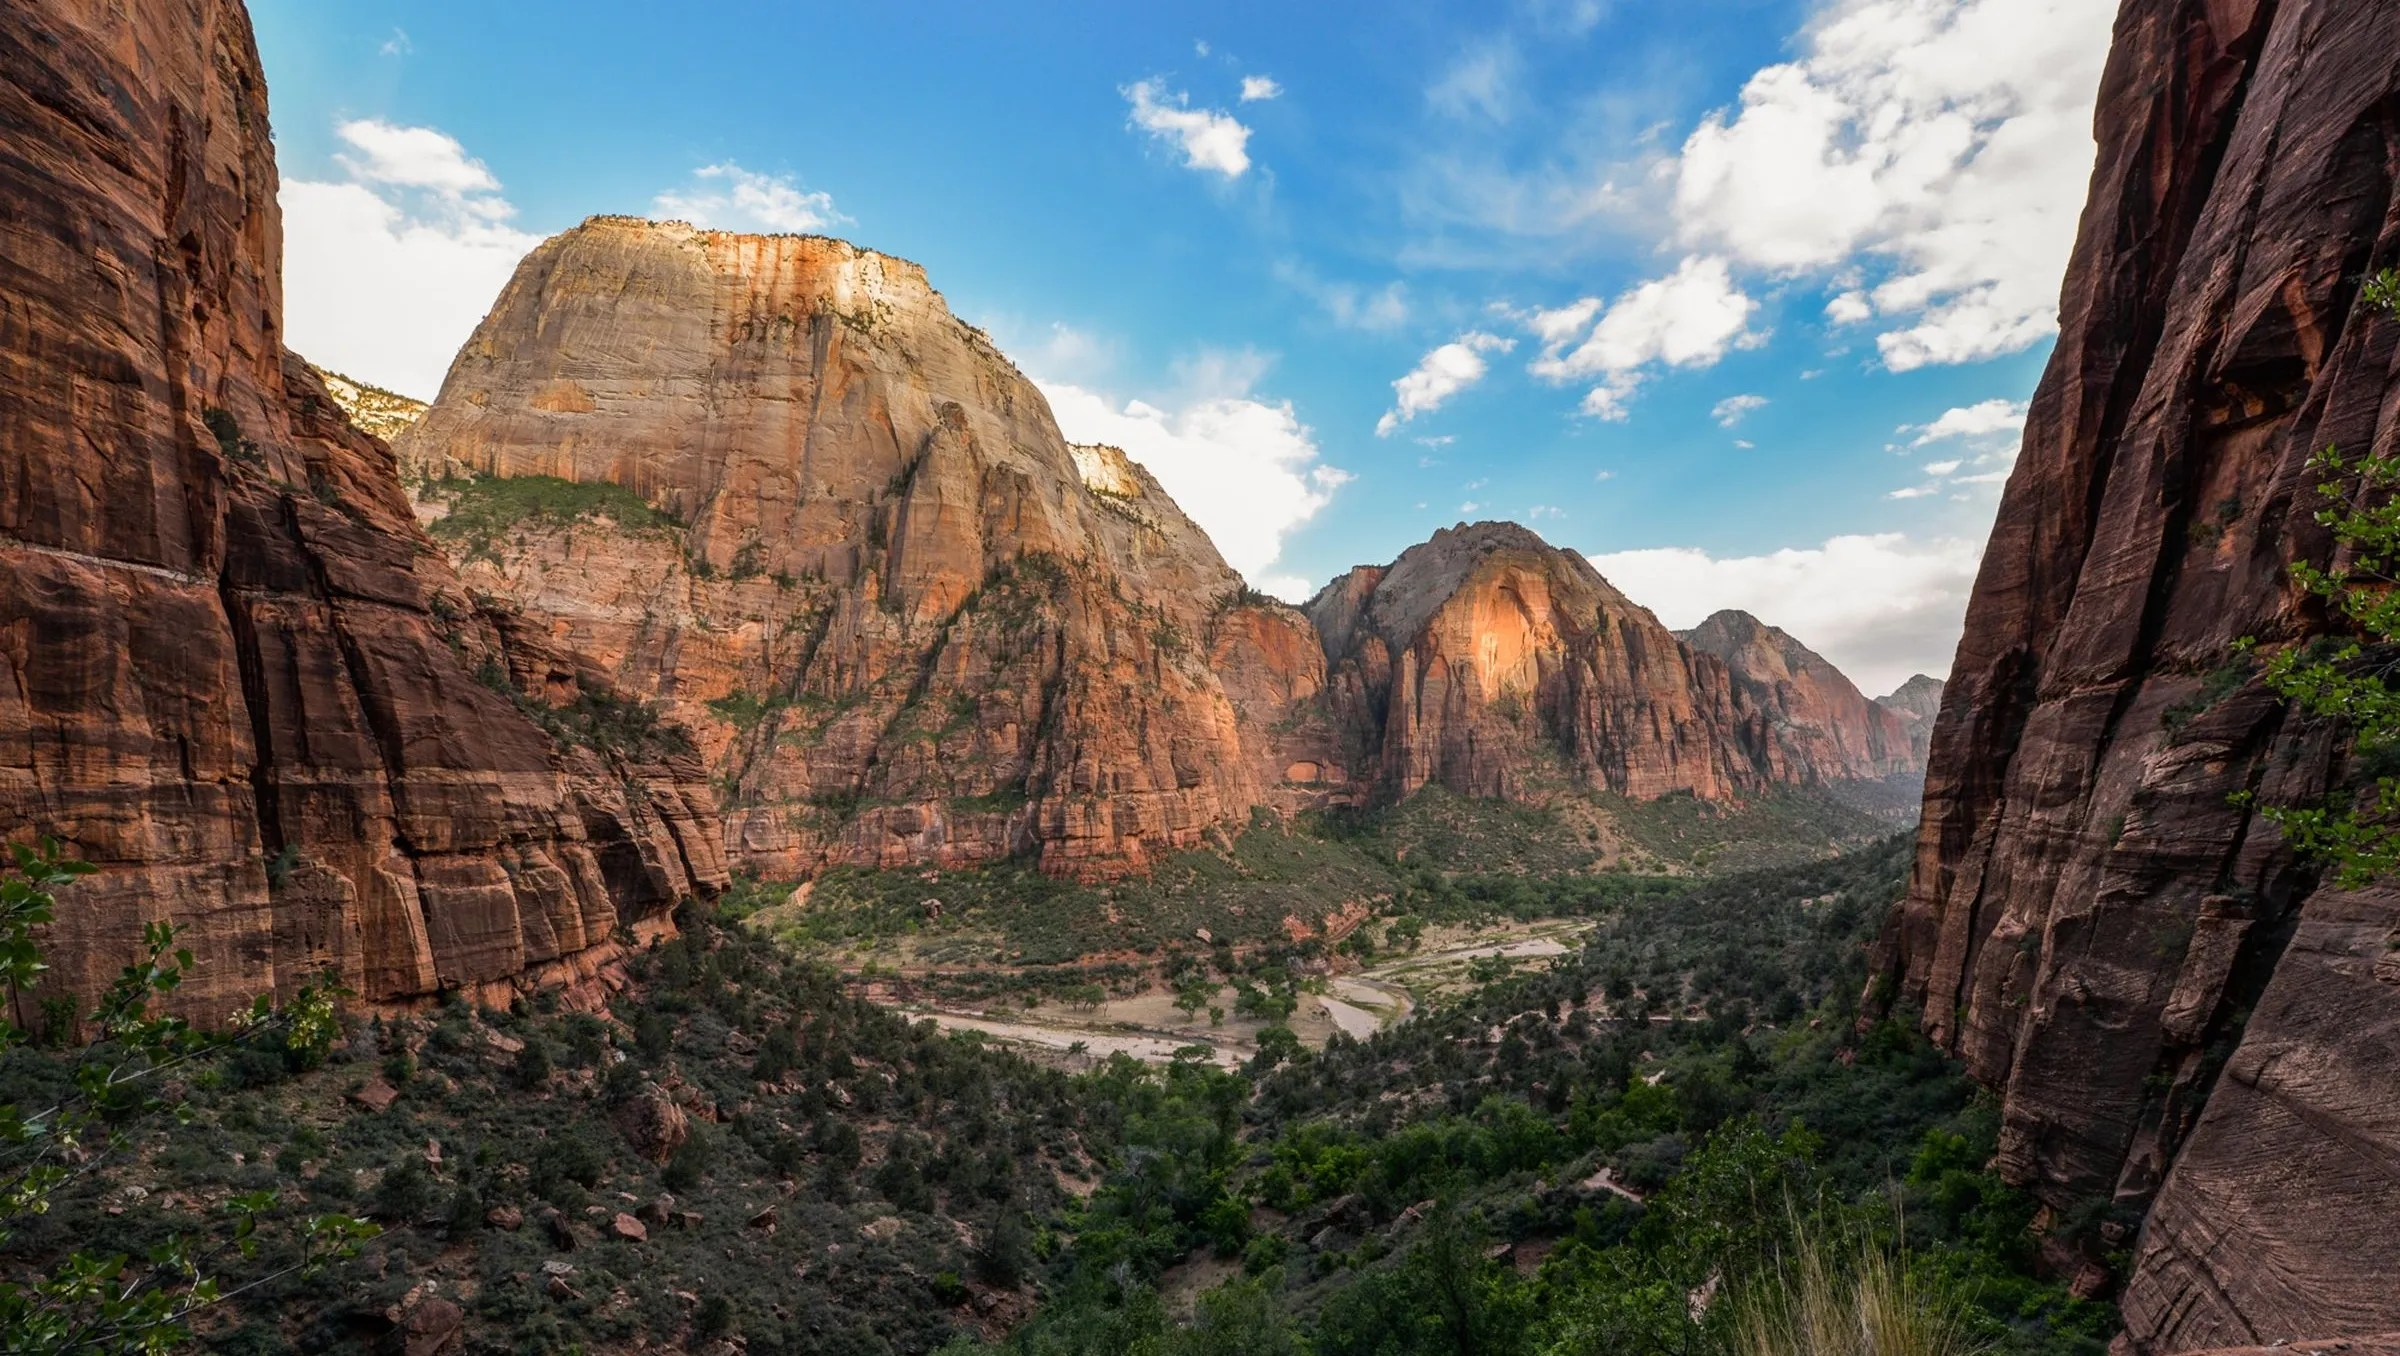 Zion National Park 10 tips for your visit to the park